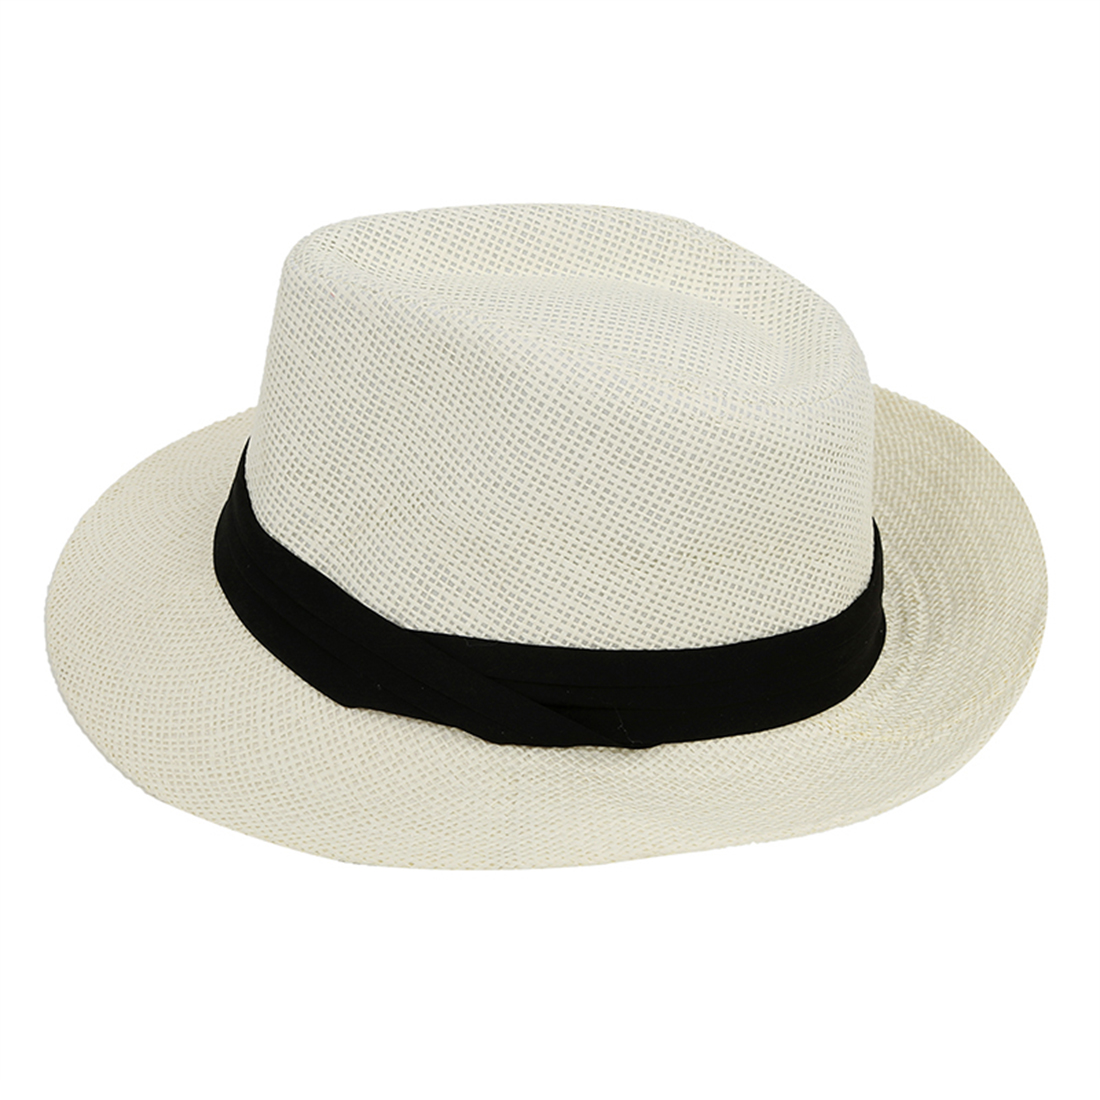 White Casual Straw Fedora Hat Sun Hat For Lovers